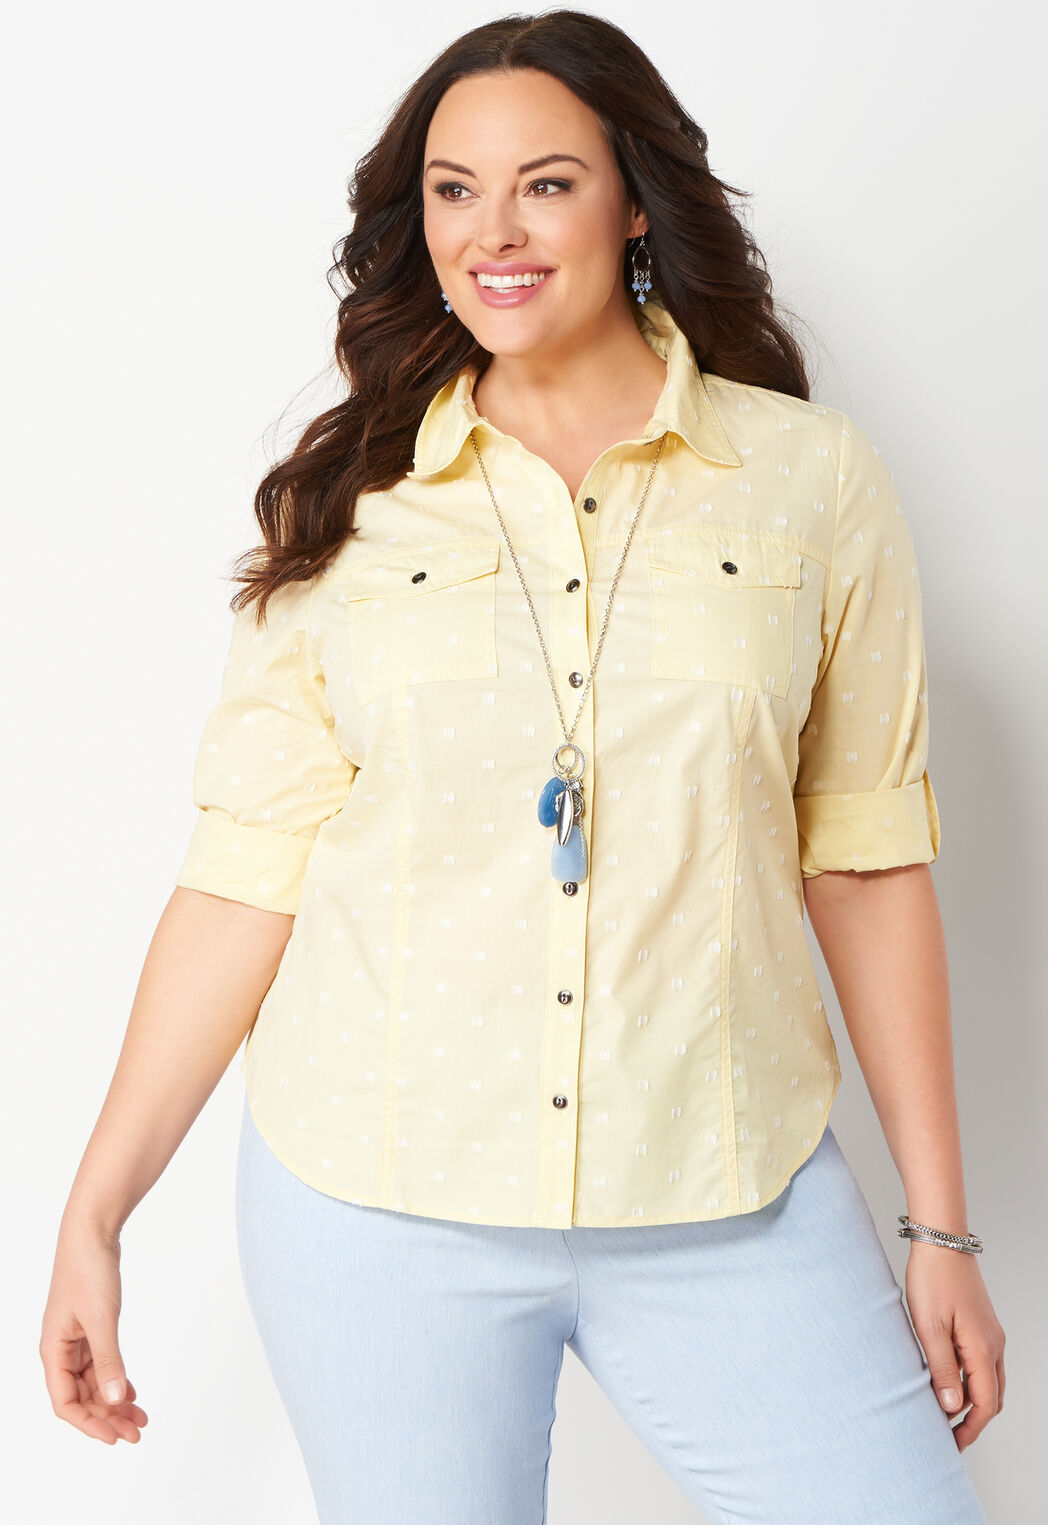 694dc9c3448 Women s Square Clipdot Essential Plus Size Shirt from Christopher ...